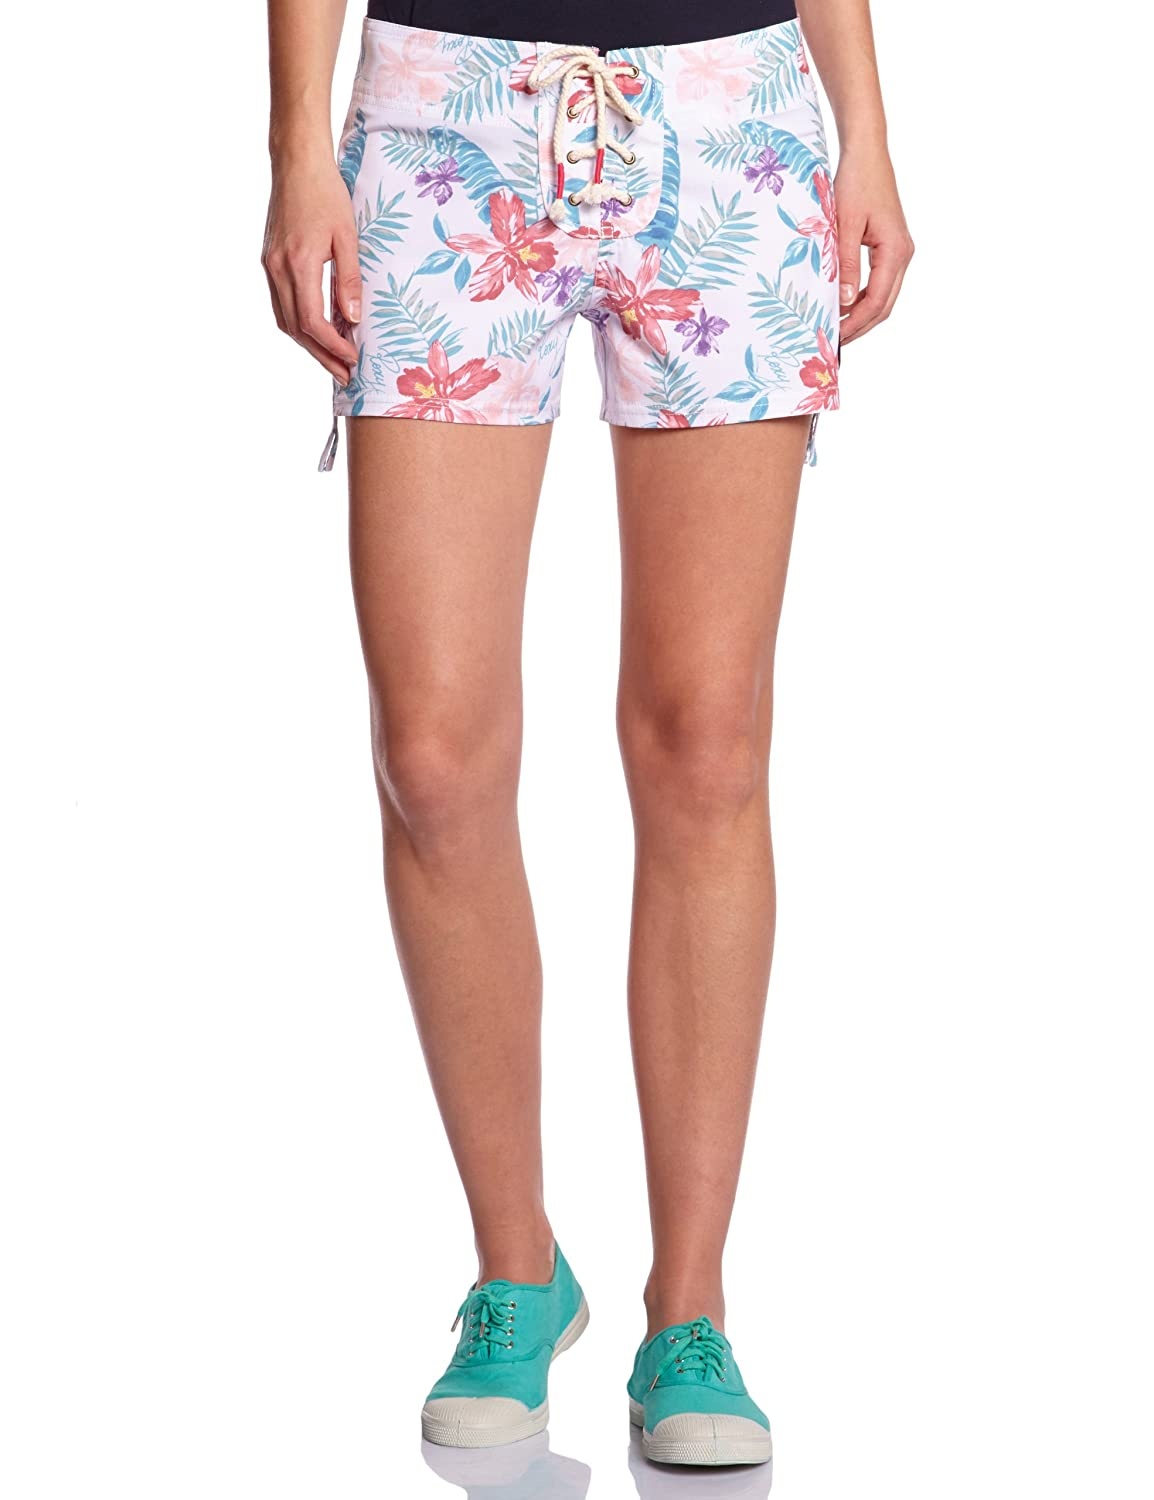 Roxy Damen Boardshorts Retro Surf Mid